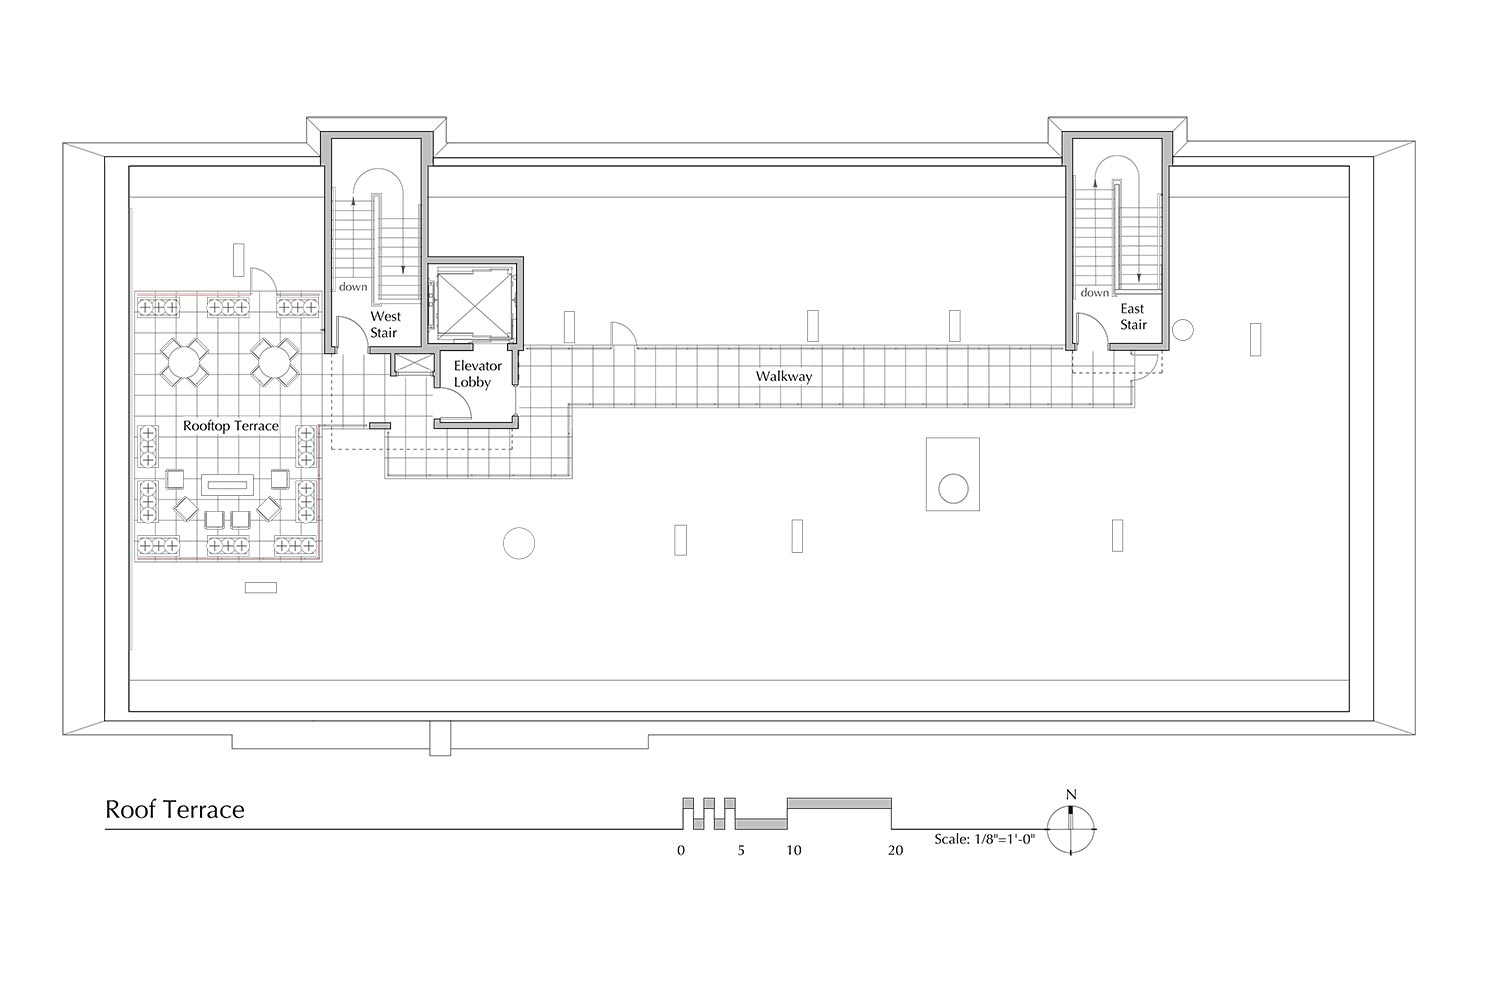 Roof Plan For Web Site